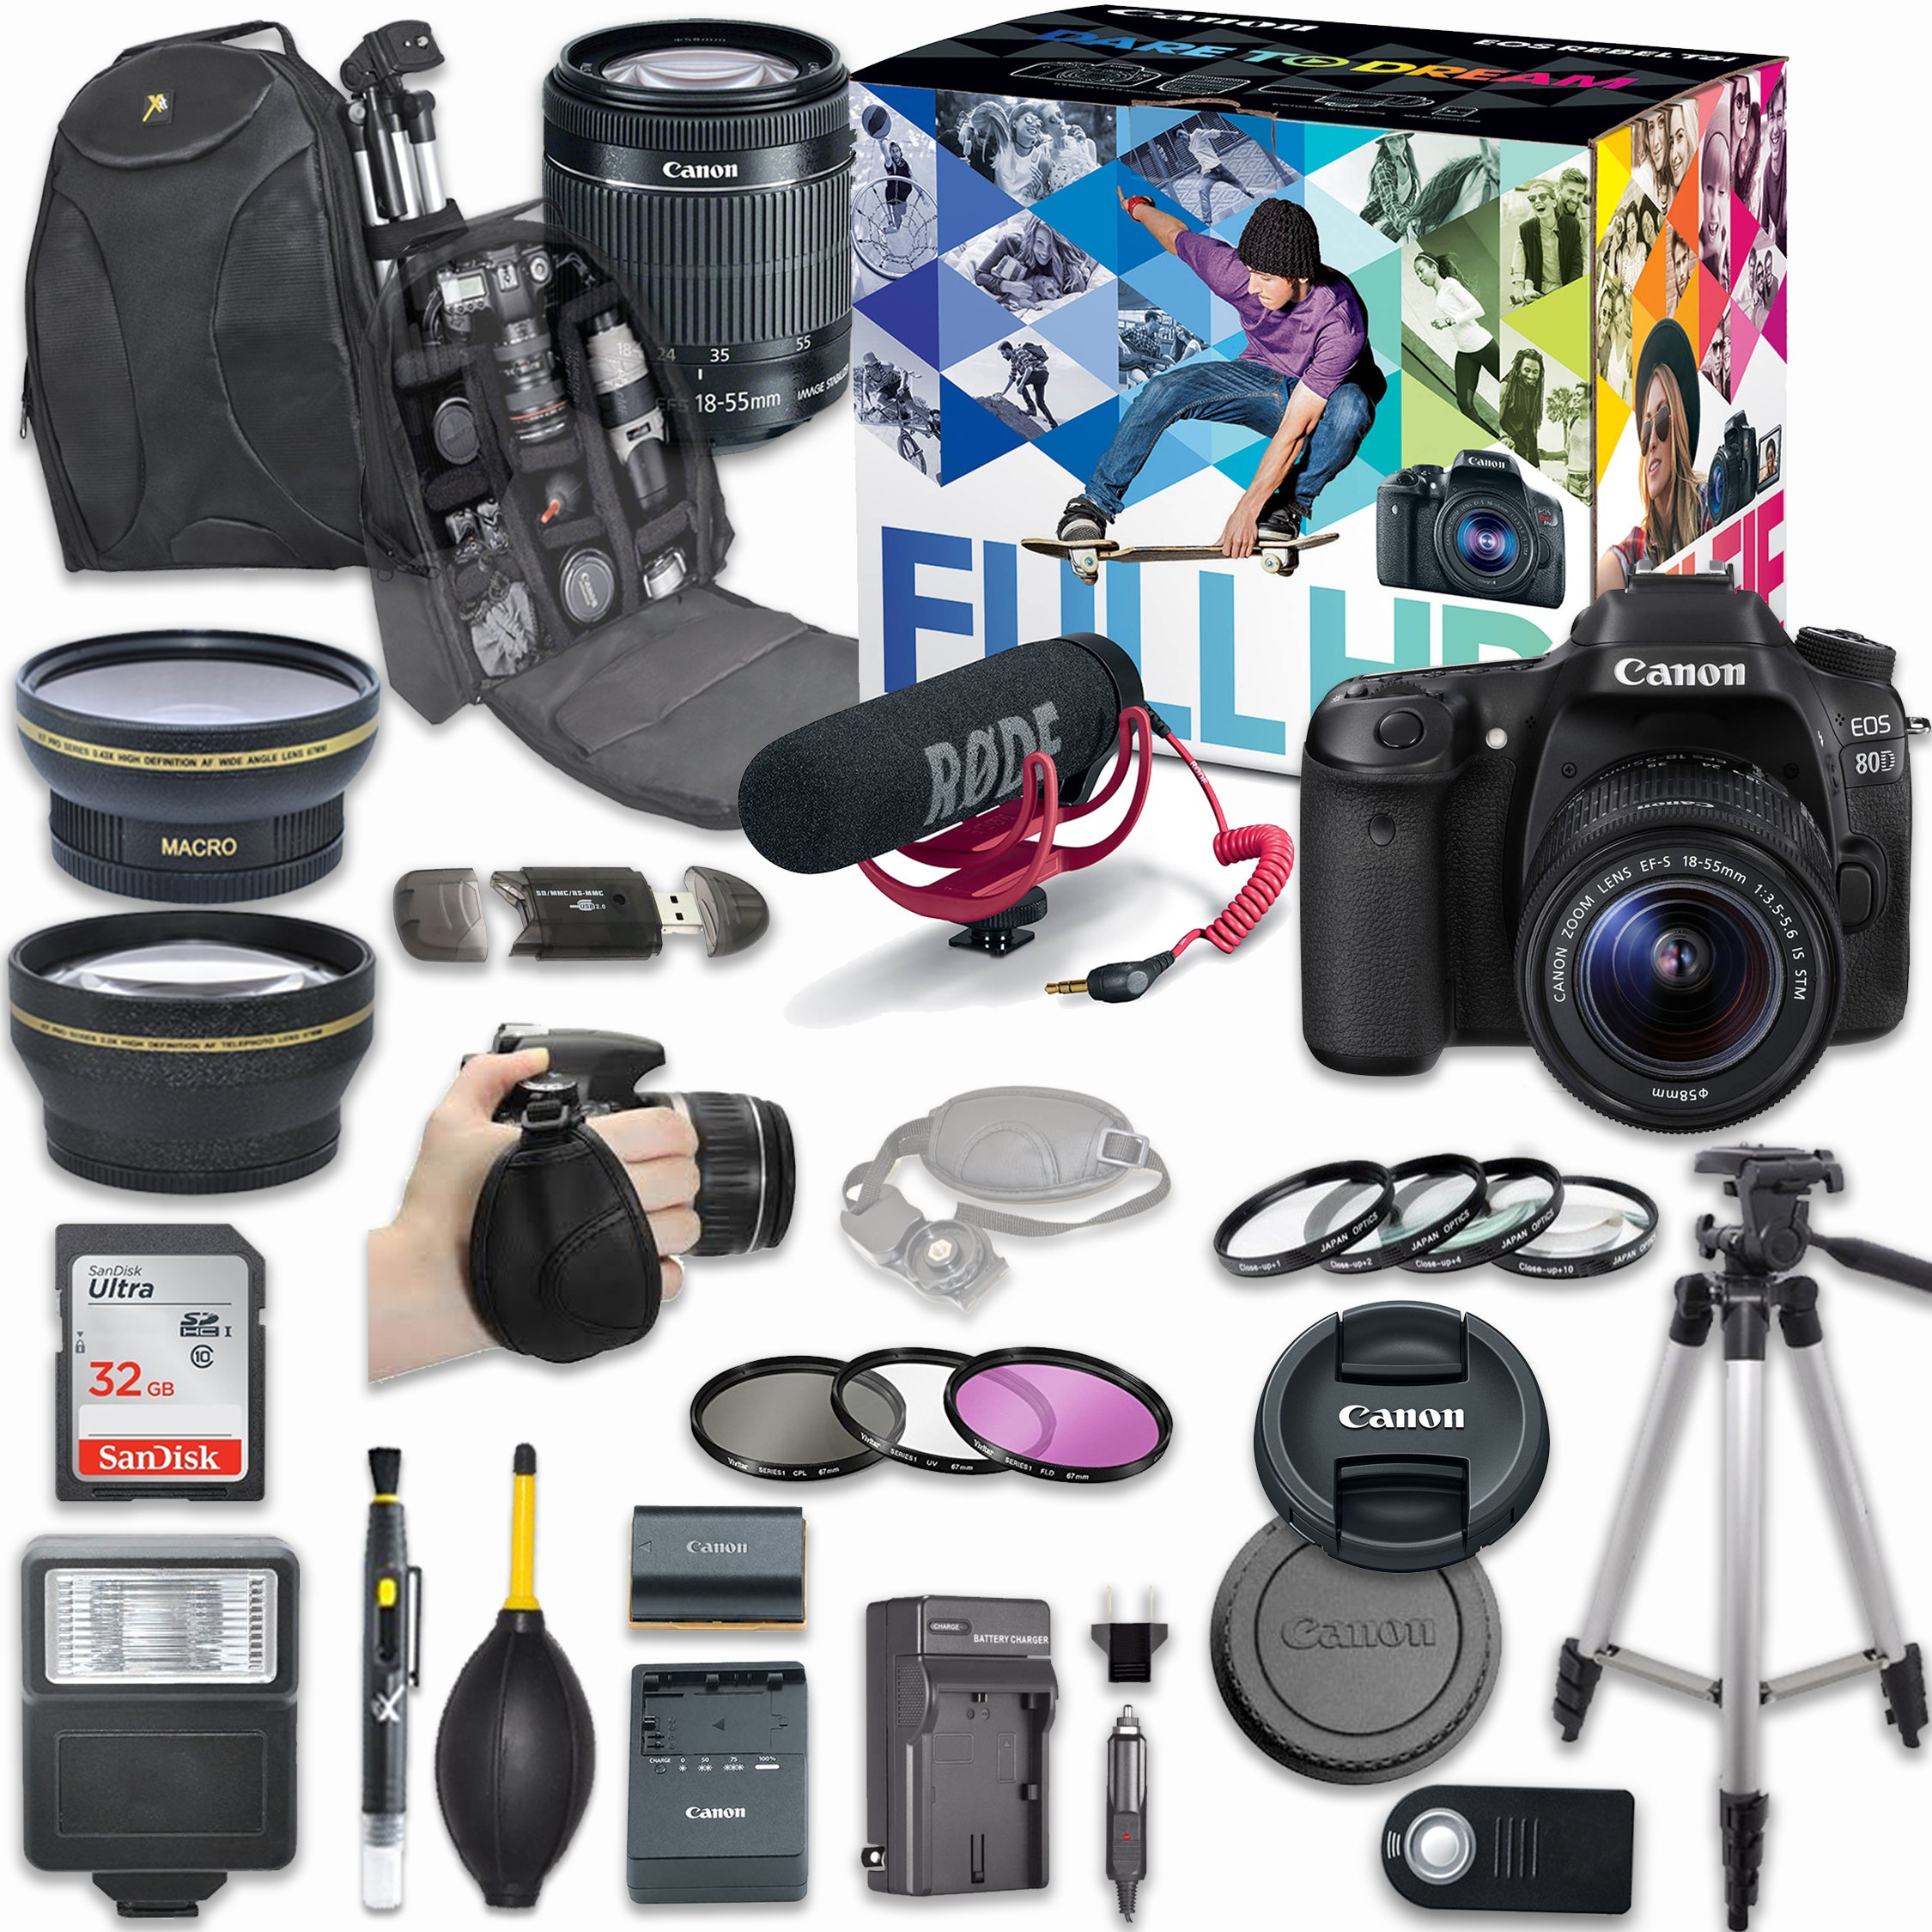 Canon EOS 80D DSLR Camera Deluxe Video Creator Kit with Canon EF-S 18-55mm f/3.5-5.6 IS STM Lens + Rode VIDEOMIC GO Microphone + SanDisk 32GB SD Memory Card + Accessory Bundle